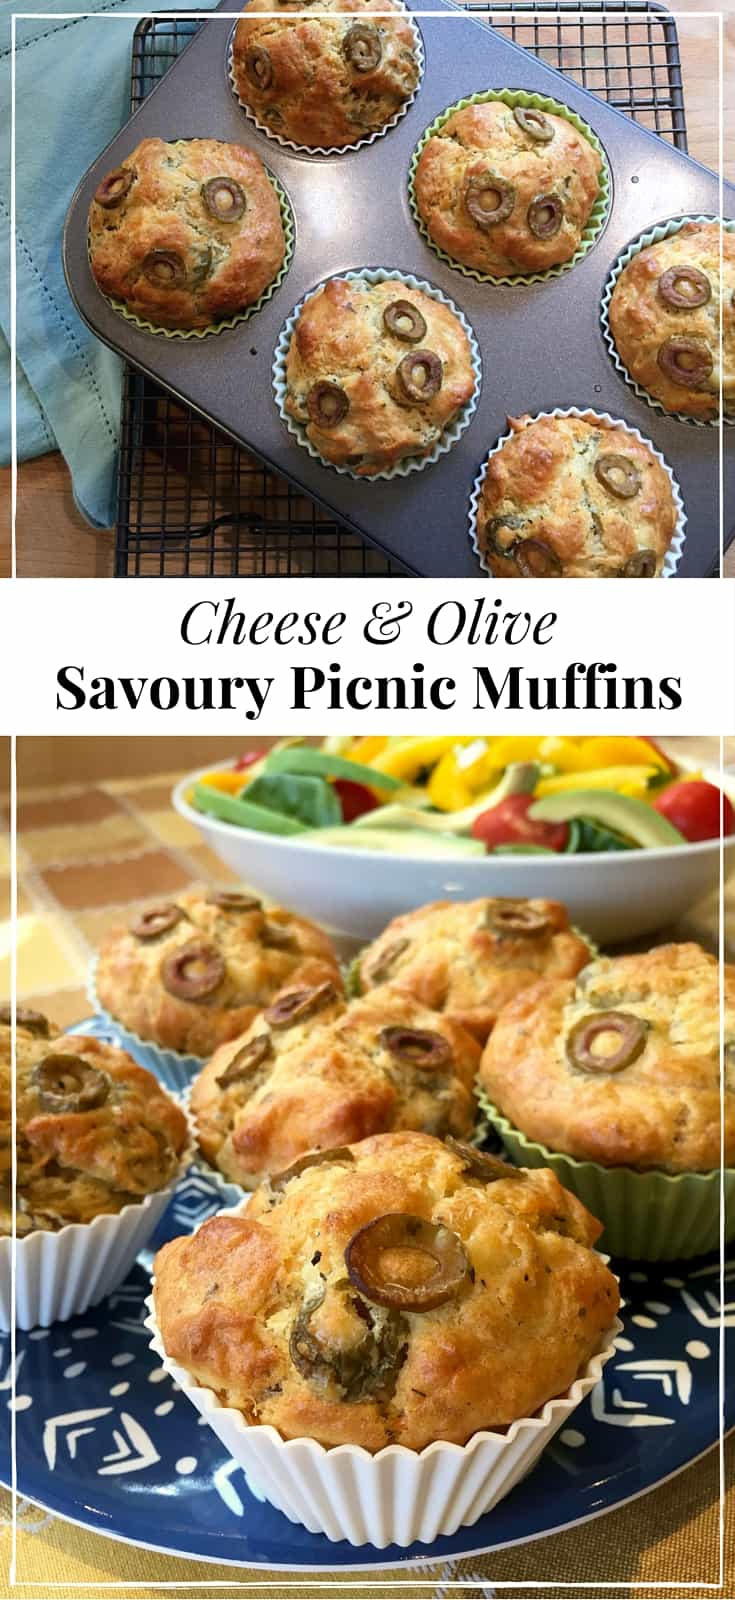 Easy and delicious! Packed with tasty olives and tangy cheese, these fabulous savoury muffins are perfect for picnics and lunch boxes, or as a snack any time.